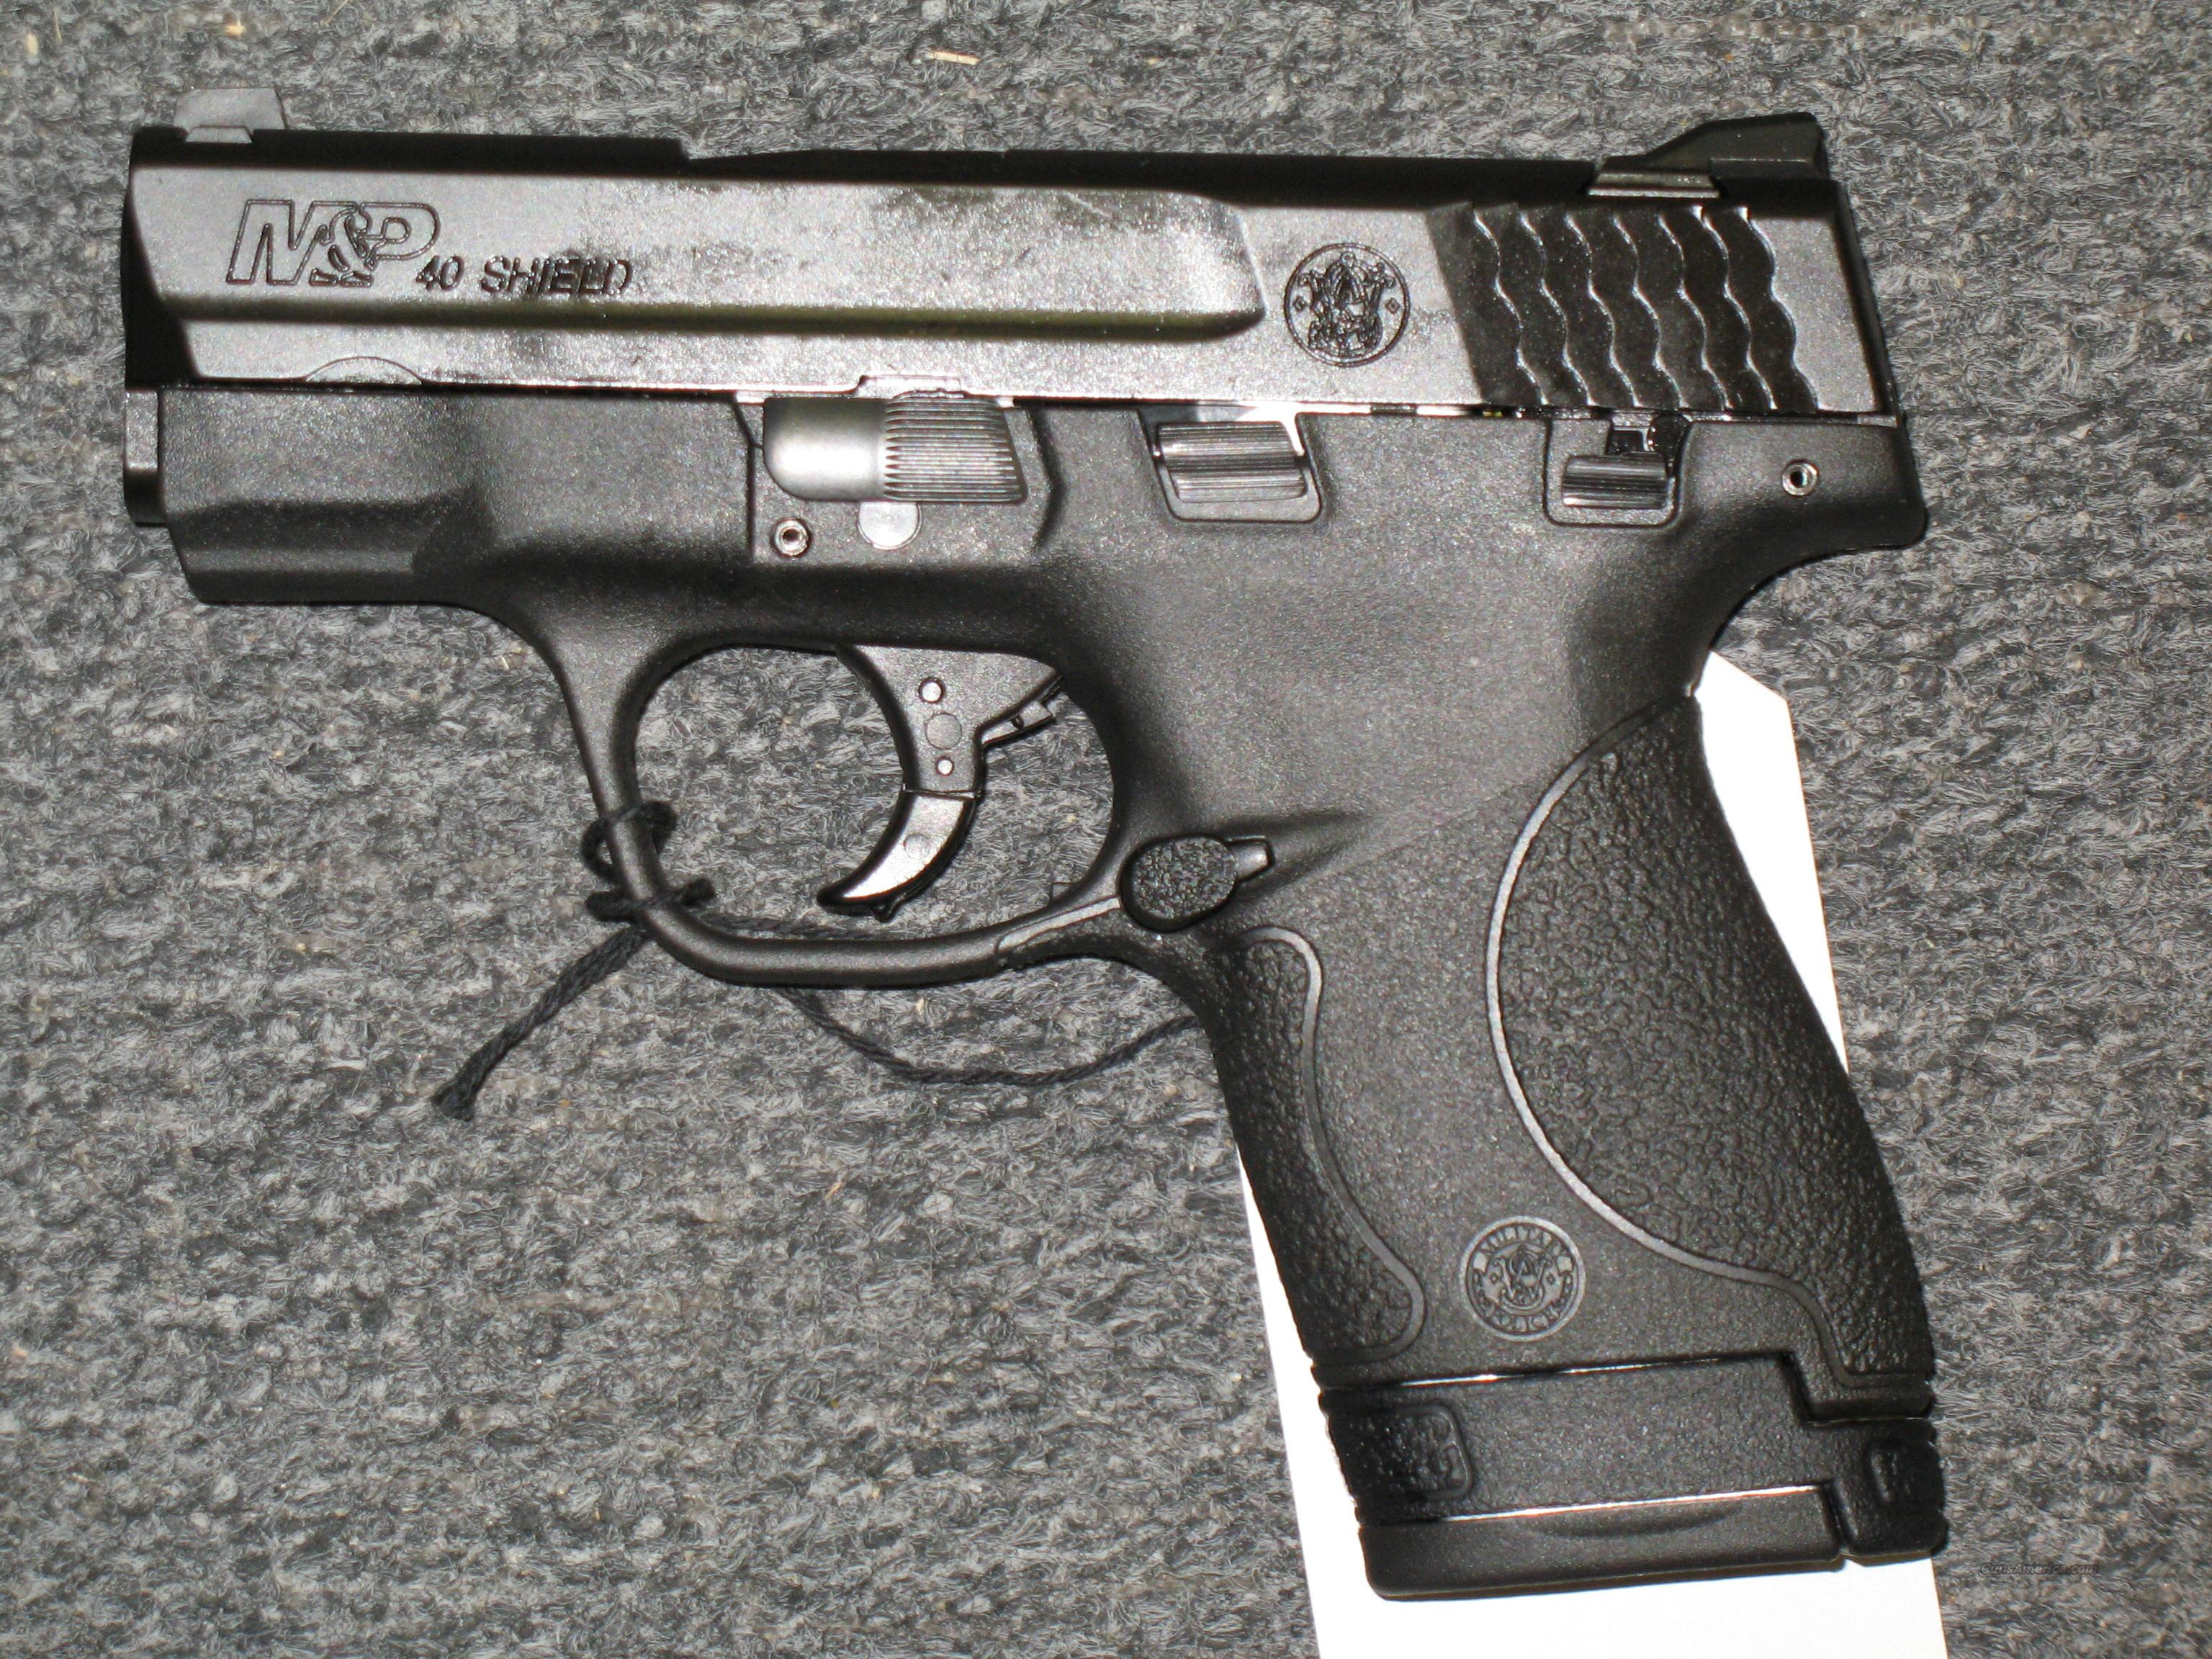 M&P 40 Shield w/Thumb Safety  Guns > Pistols > Smith & Wesson Pistols - Autos > Shield